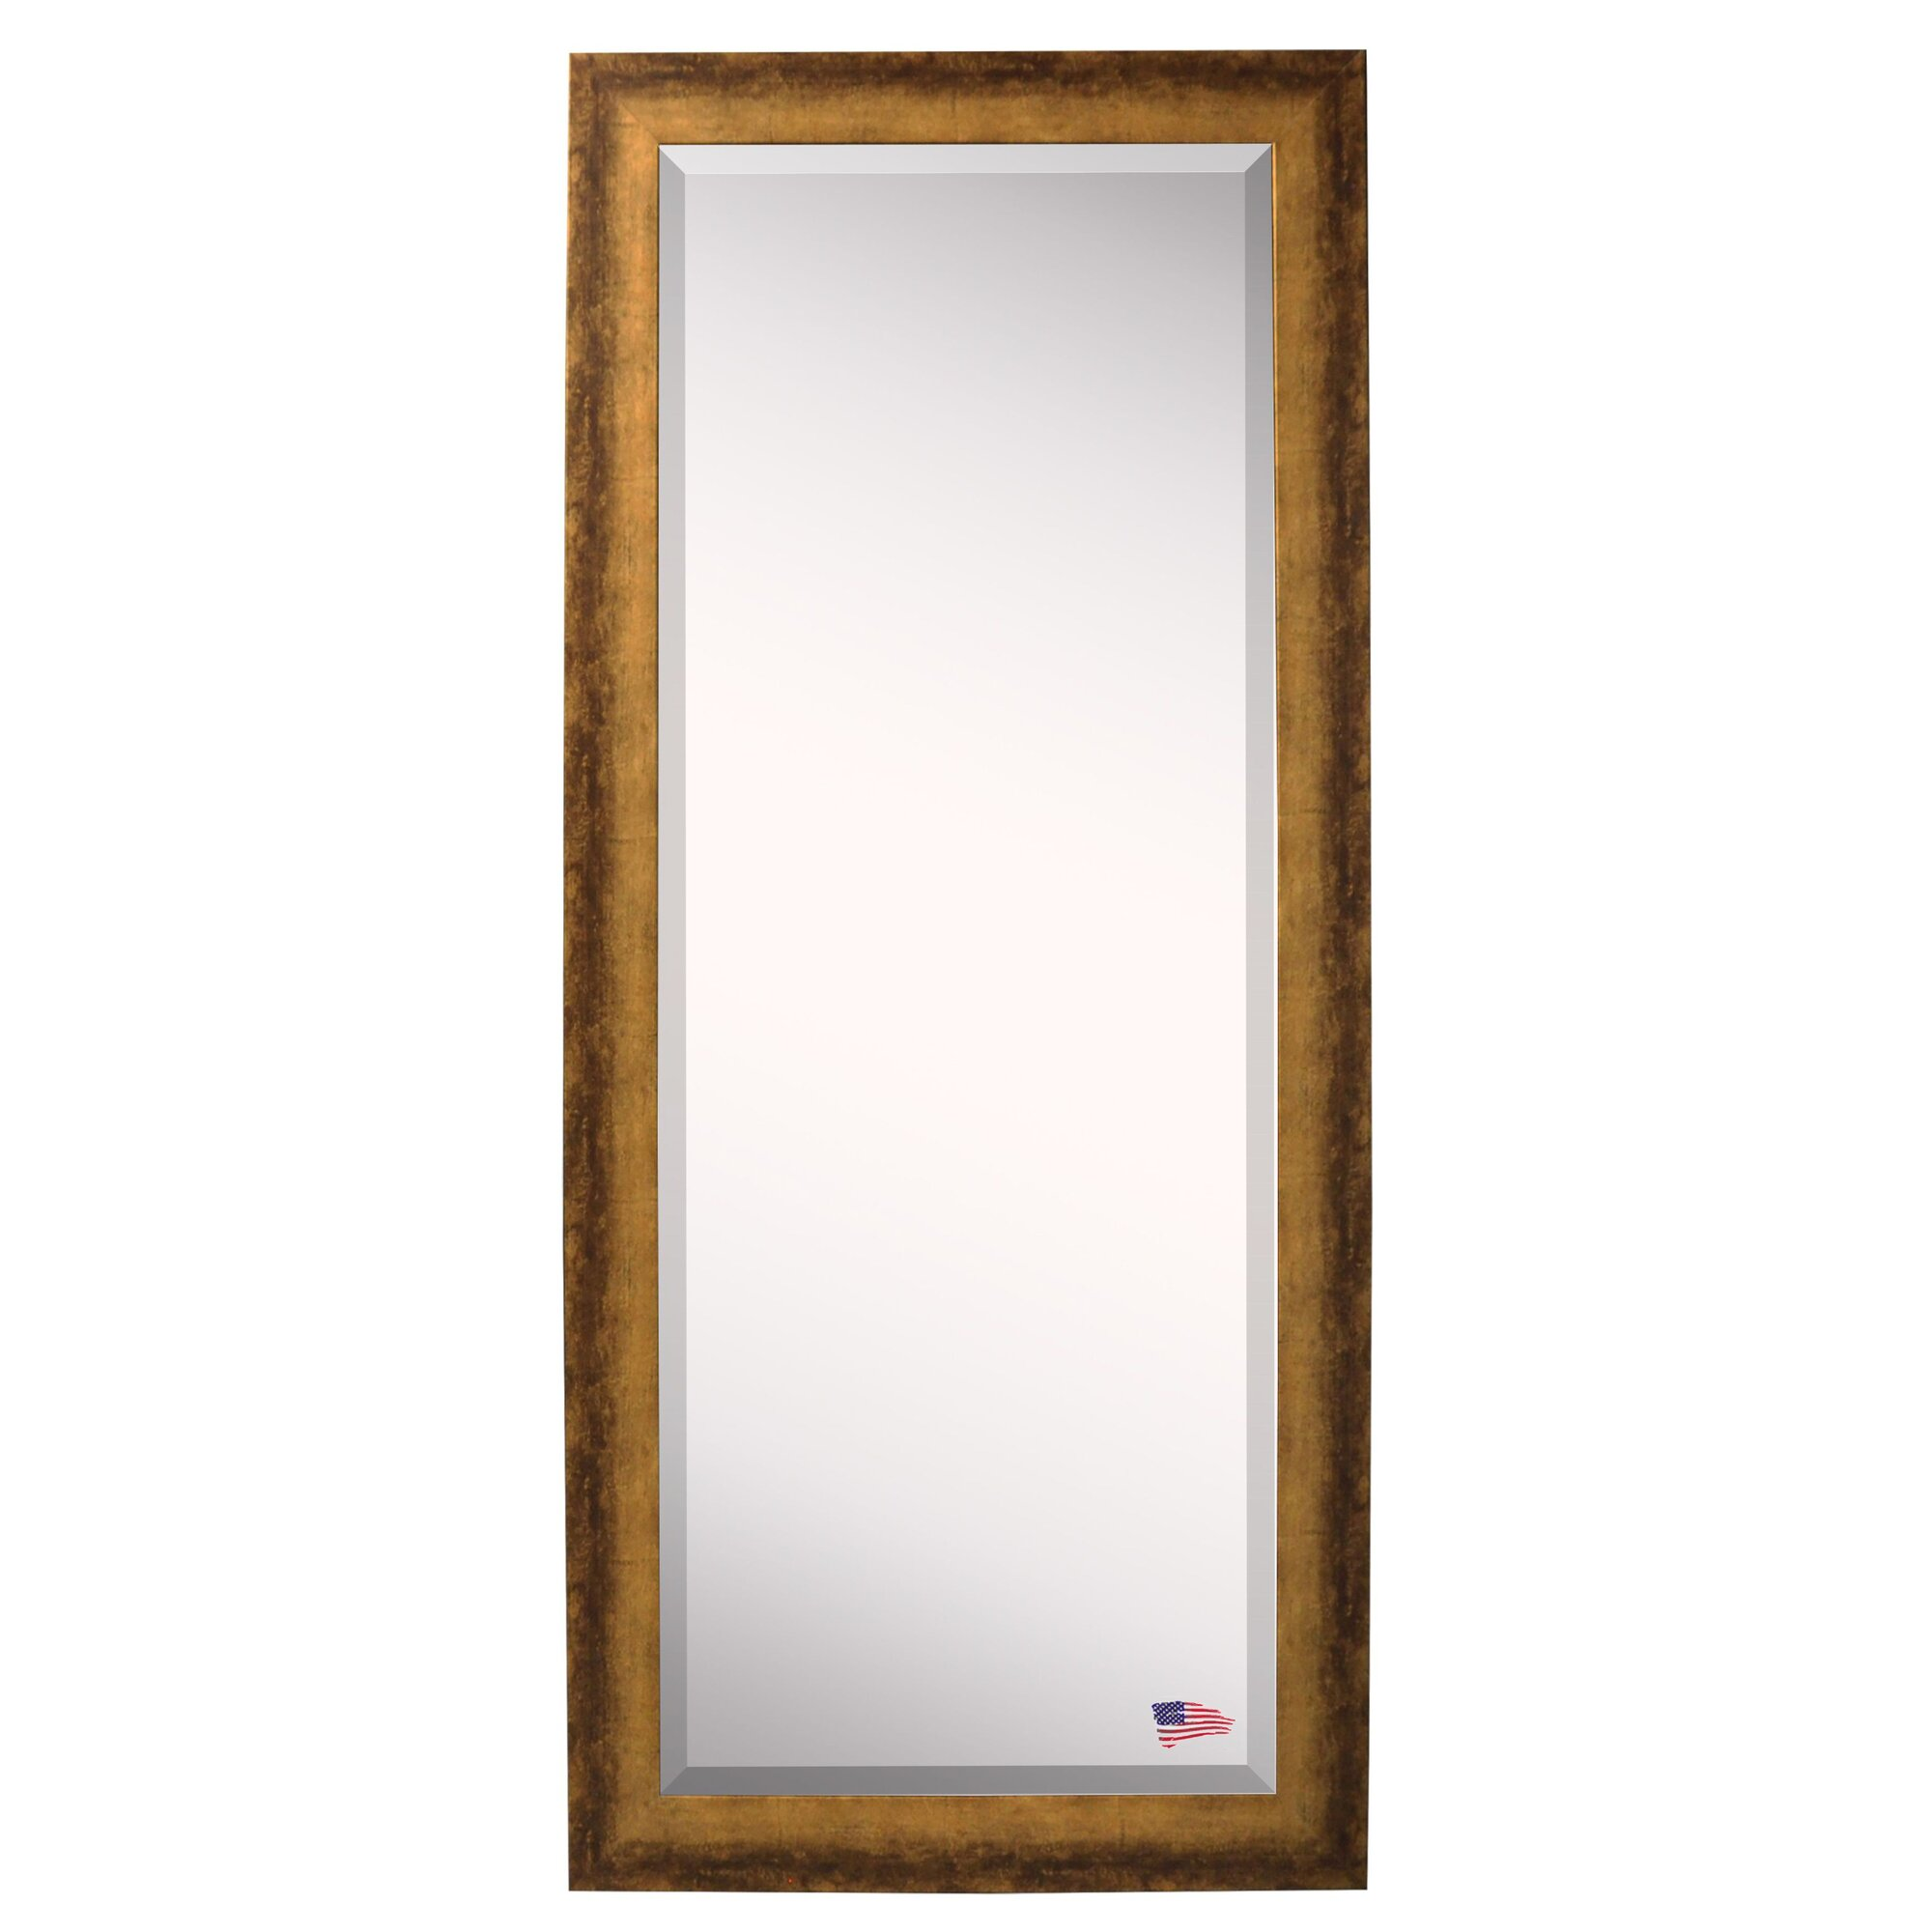 Extra tall floor mirror reviews birch lane for Tall glass mirror